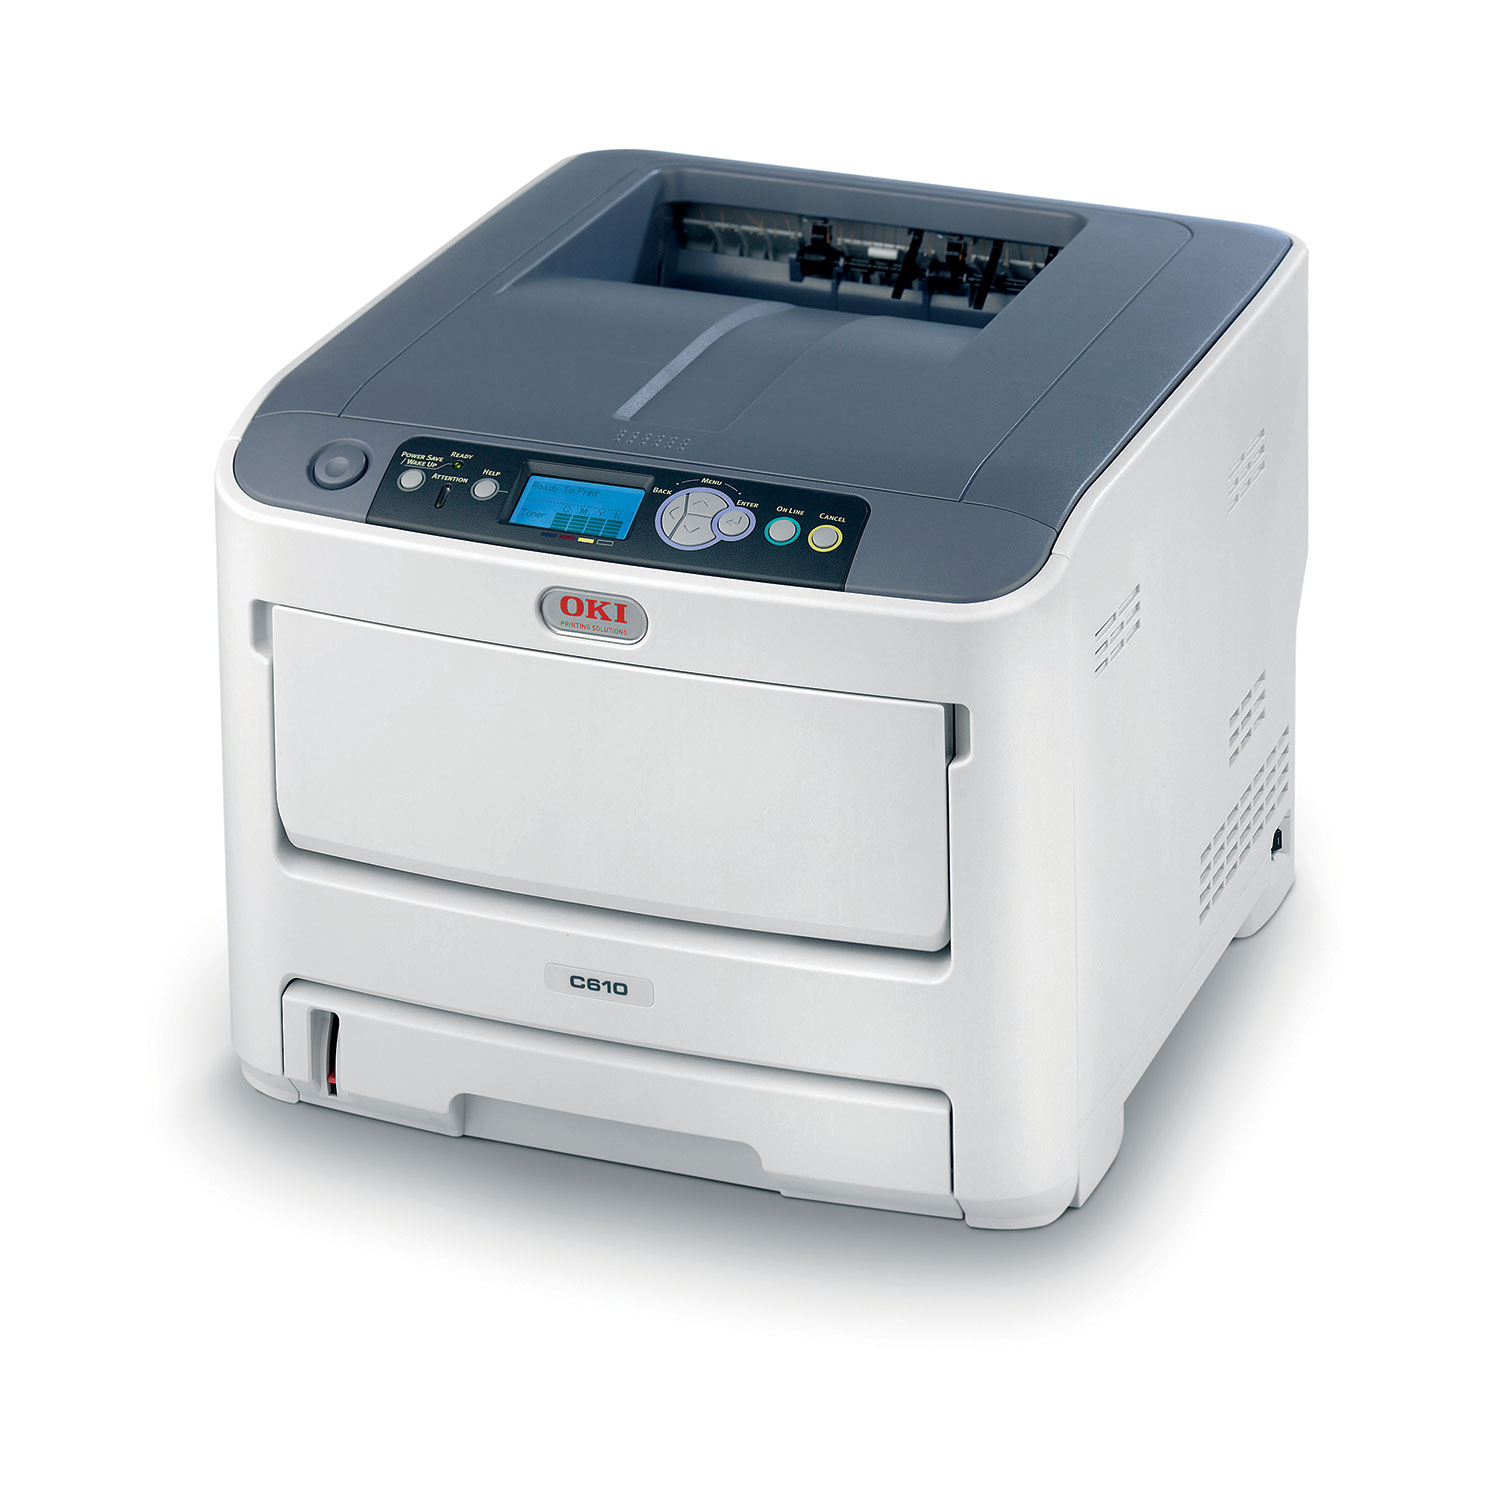 OKI-C610dn-Duplex-Network-A4-Colour-Laser-Printer